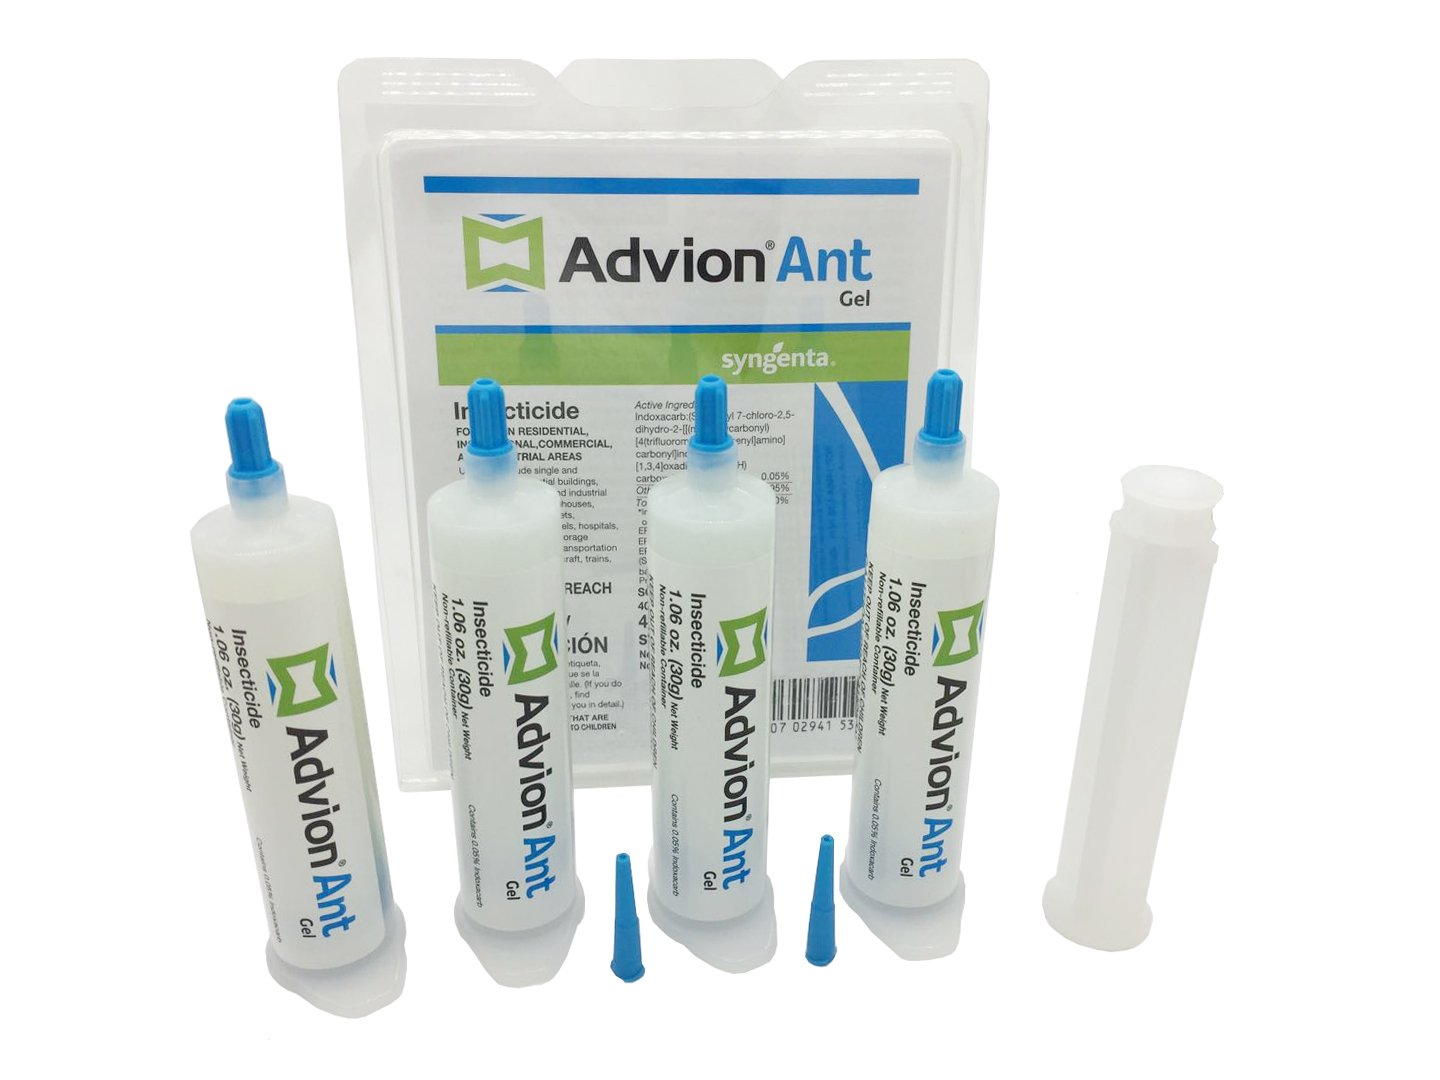 Highly Effective Ant Bait Gel 4 Tubes ABW7A11001